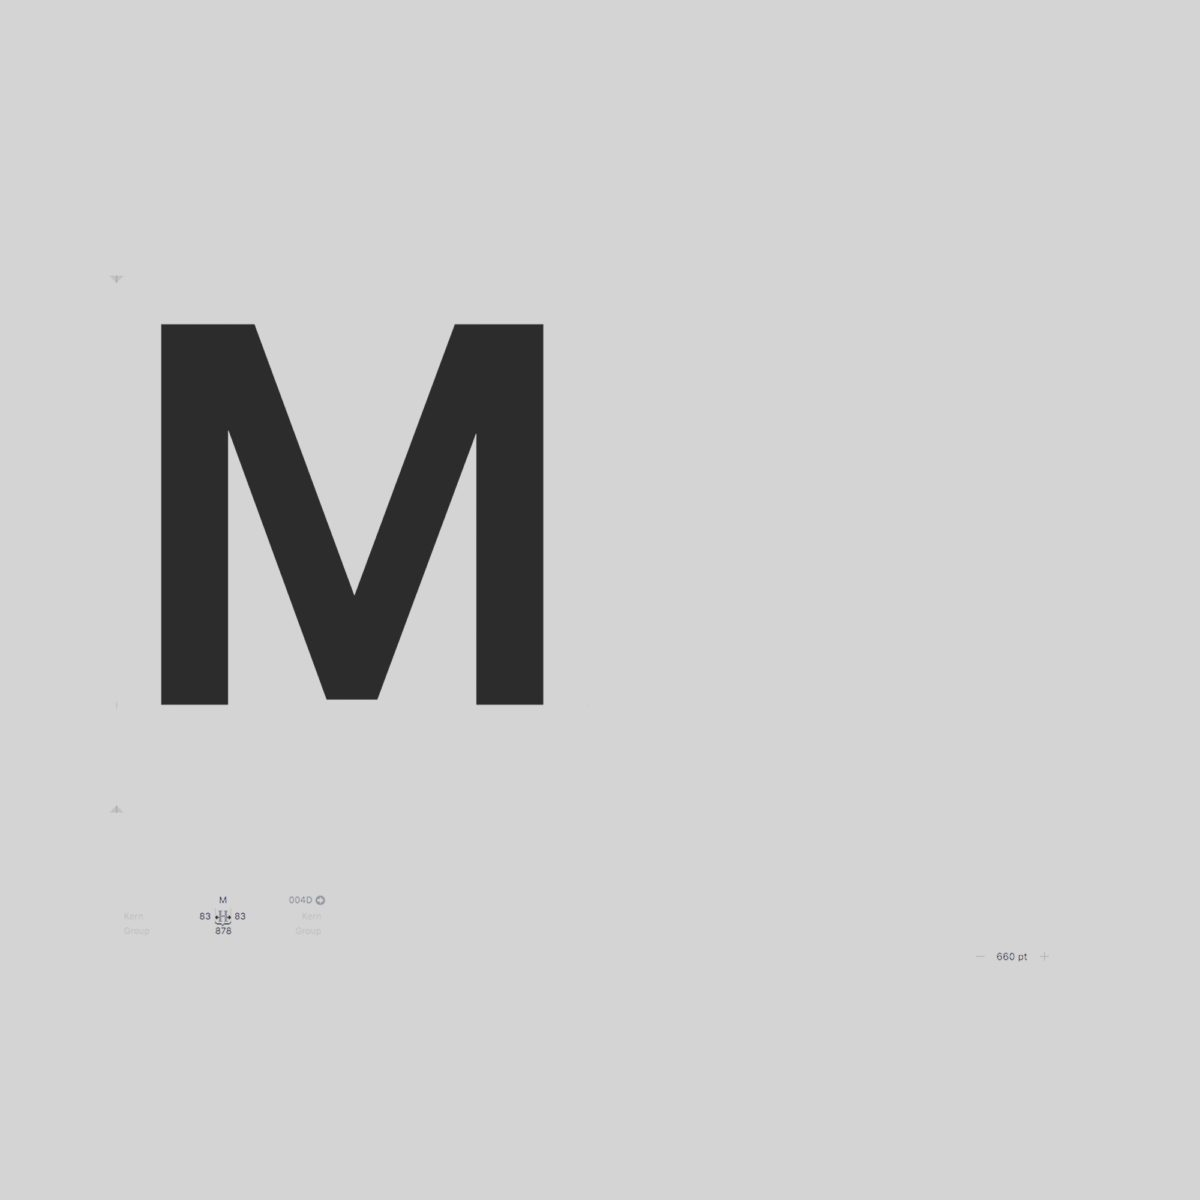 Work In Progress — Type.M.#graphics #design #agencylife #graphicdesigner #graphicdesign #igers #igersoftheday #designer #graphicdesign #art #artdirection  #grafik #Branding #brandingagency #Brand #grey #type #typeography #font #typography